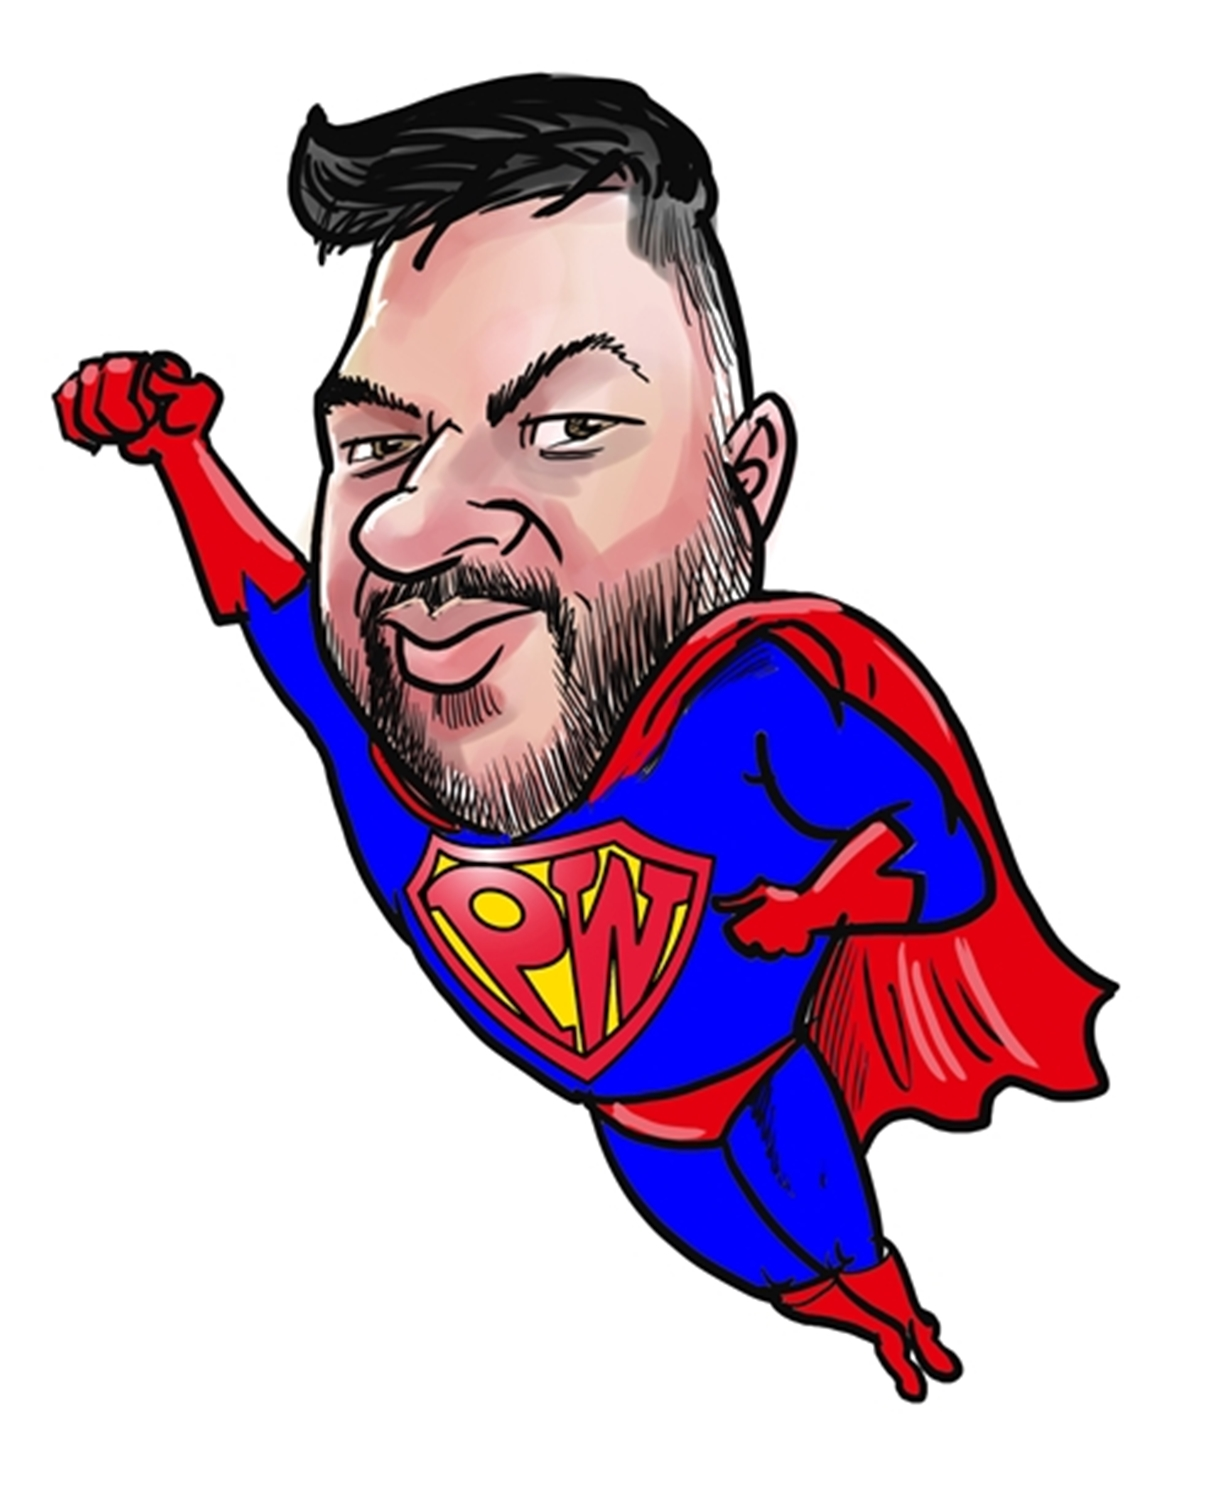 Digital painting cartoon of man dressed and flying in Superman outfit